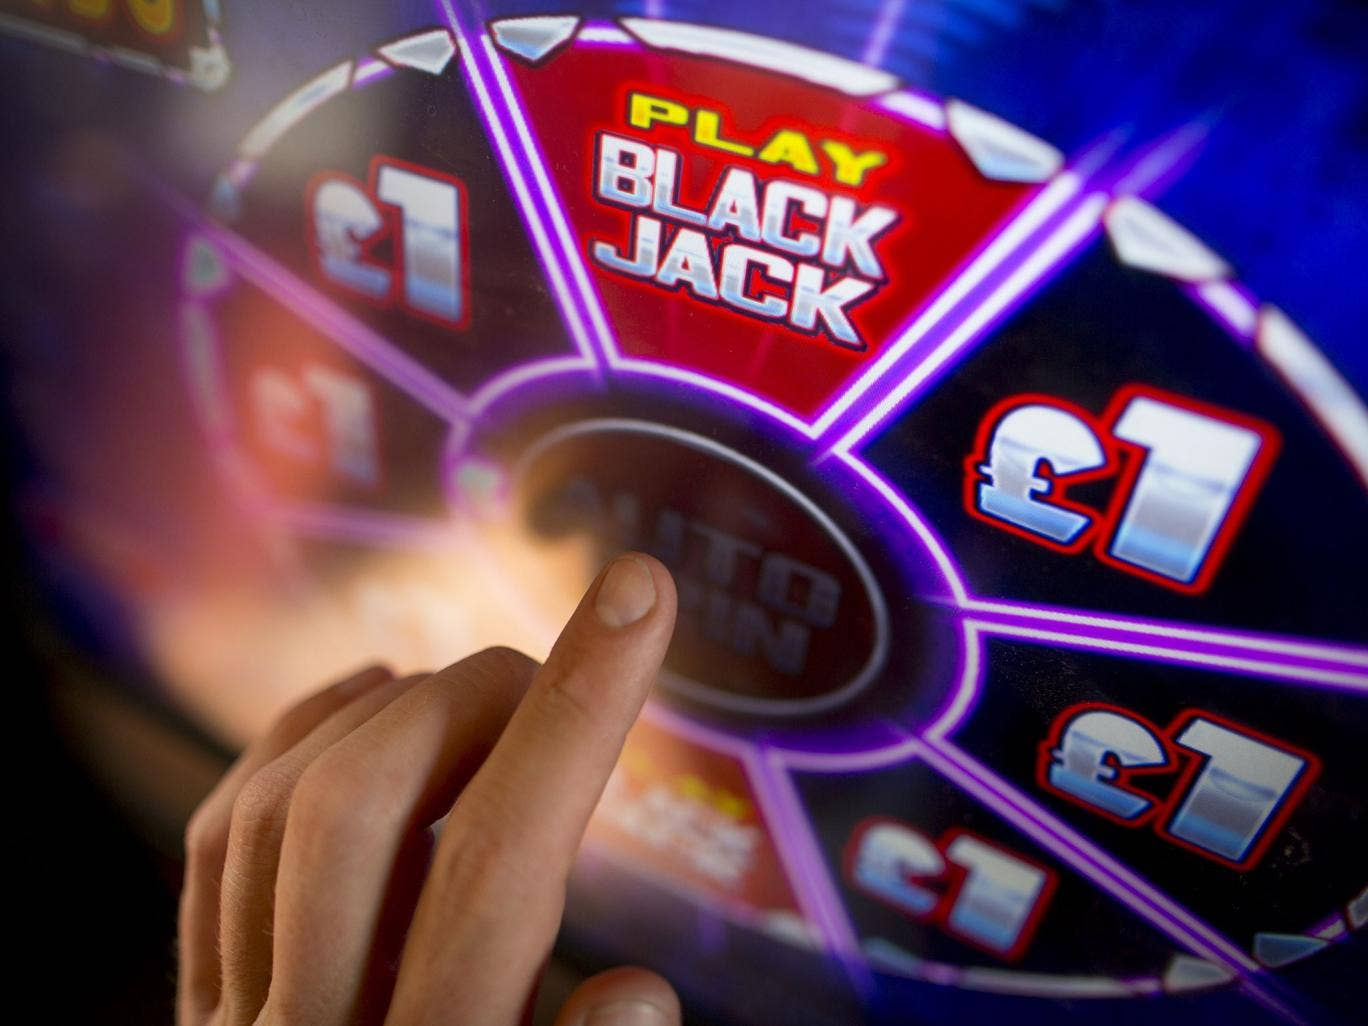 A blackjack game in a pub in Hounslow. Digital gaming machines in pubs offer far inferior odds to those in a casino